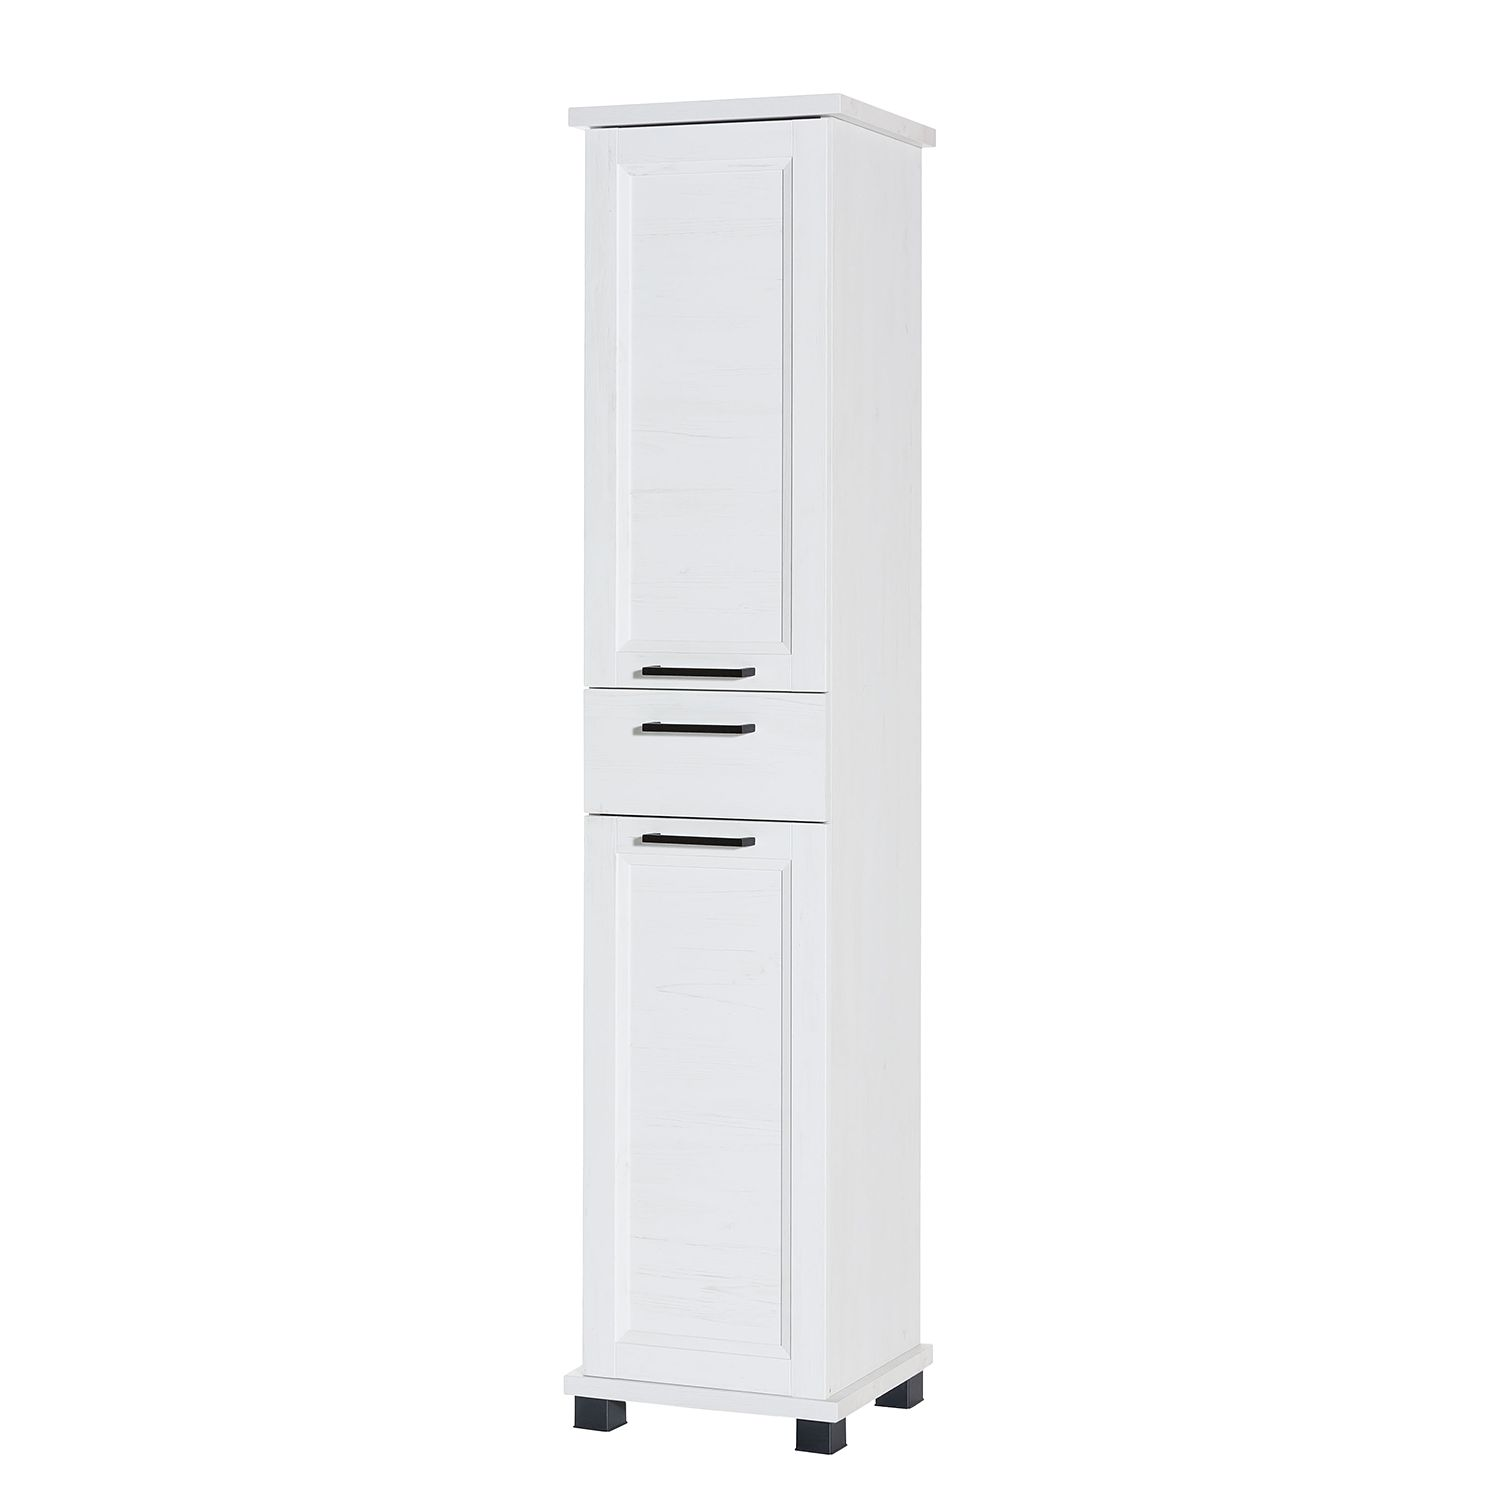 Armoire Visano I - Imitation pin blanc, Schildmeyer